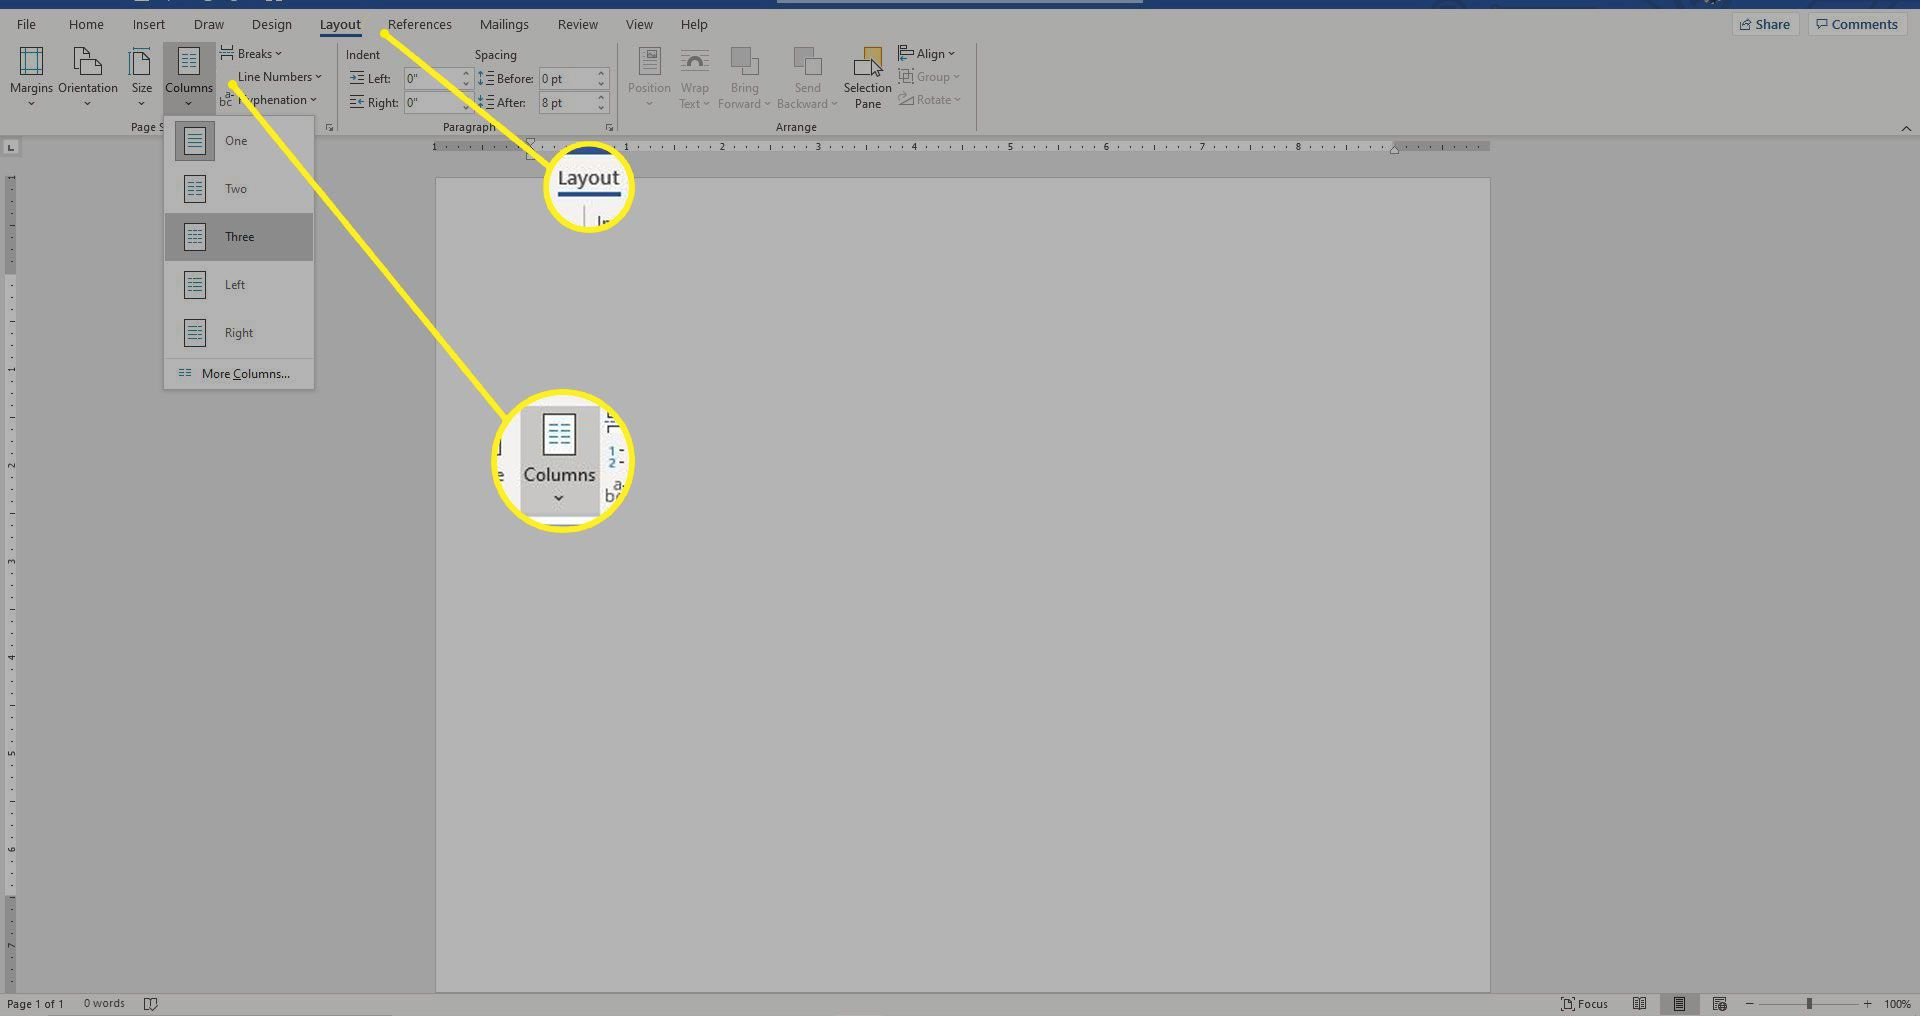 Word document with the Layout tab and Columns buttons highlighted